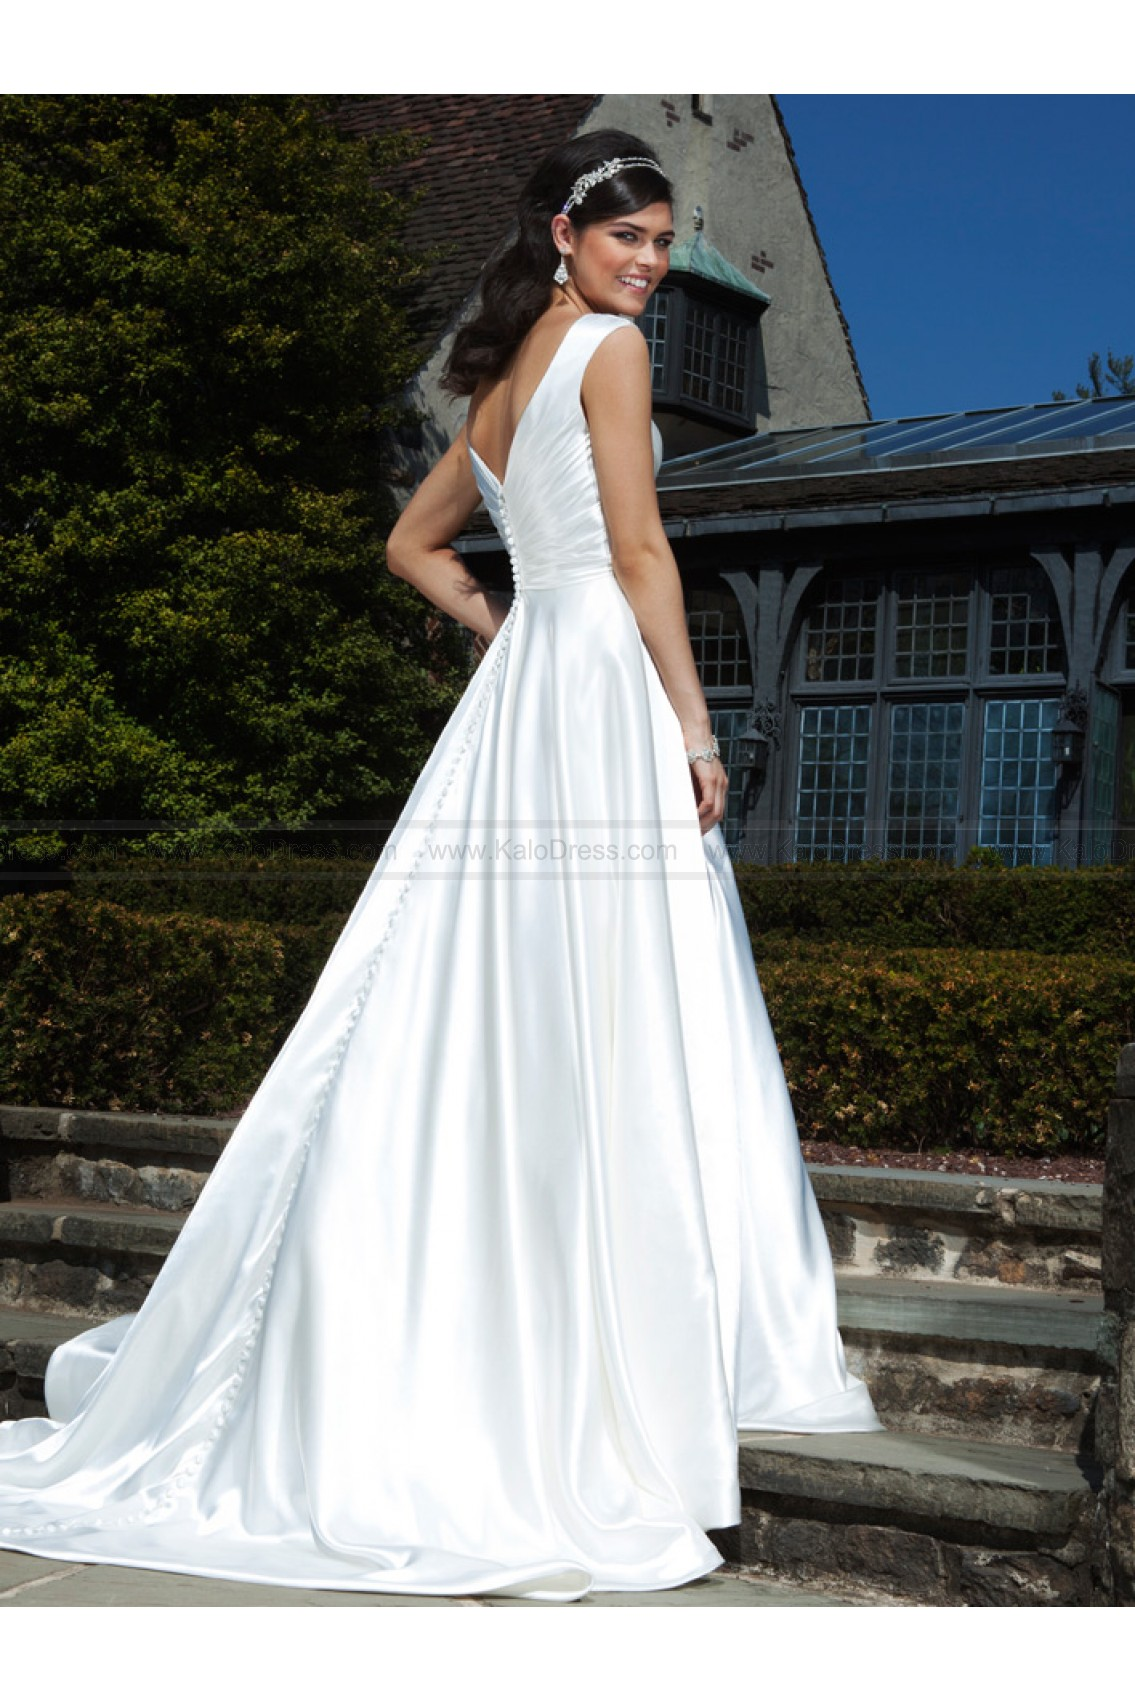 V-Neck Ruched Charmeuse Ball Bridal Dress by Sincerity 3728 - Informal Wedding Dresses